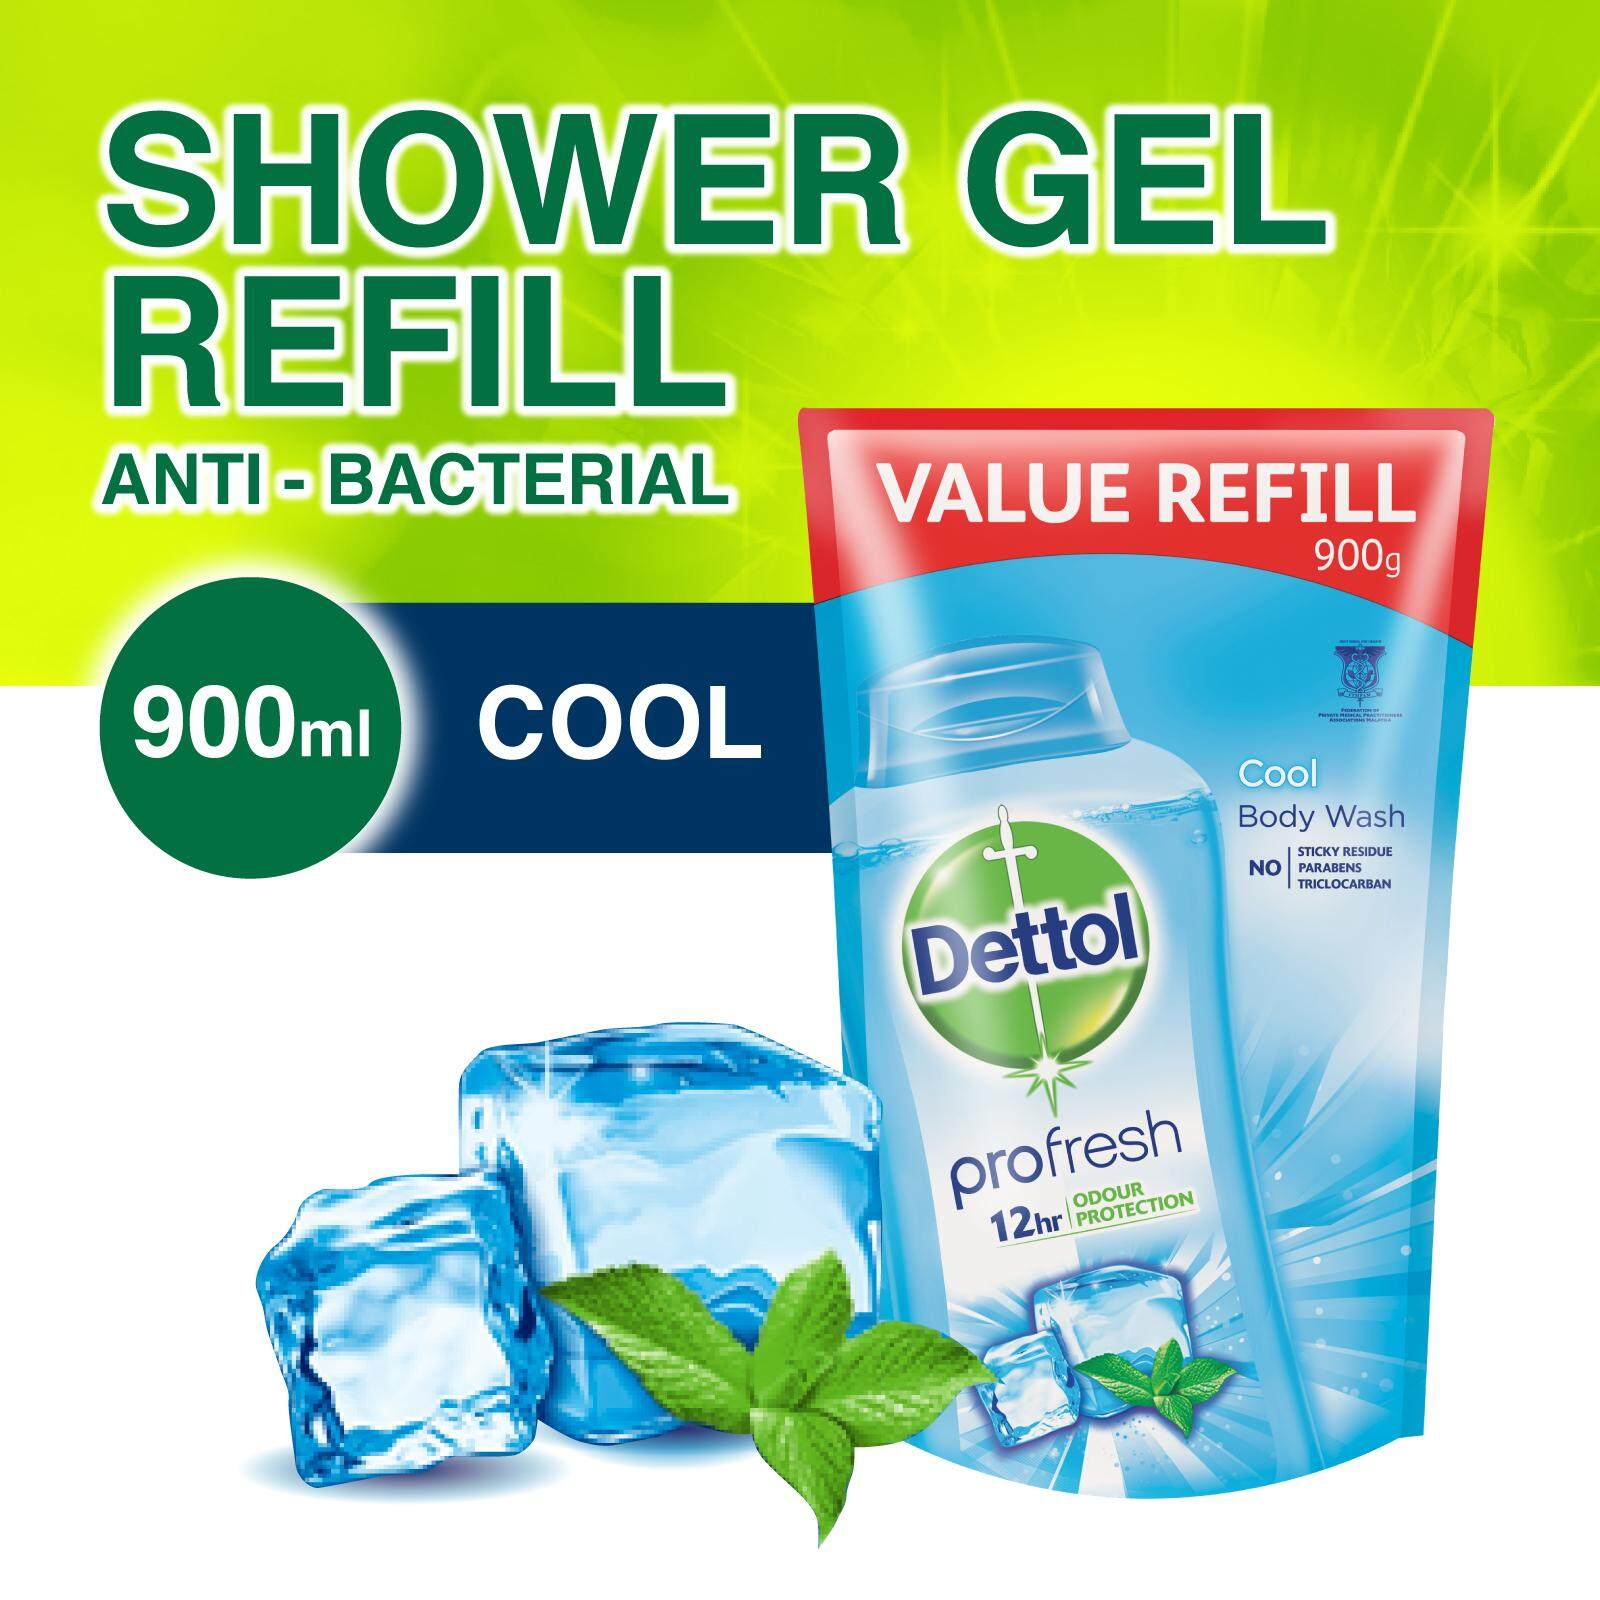 Body Soaps Shower Gels Buy At Best Citra Hand Lotion Youthful White 250 Ml Dettol Bodywash Cool 900ml Value Refill Pouch 3038618